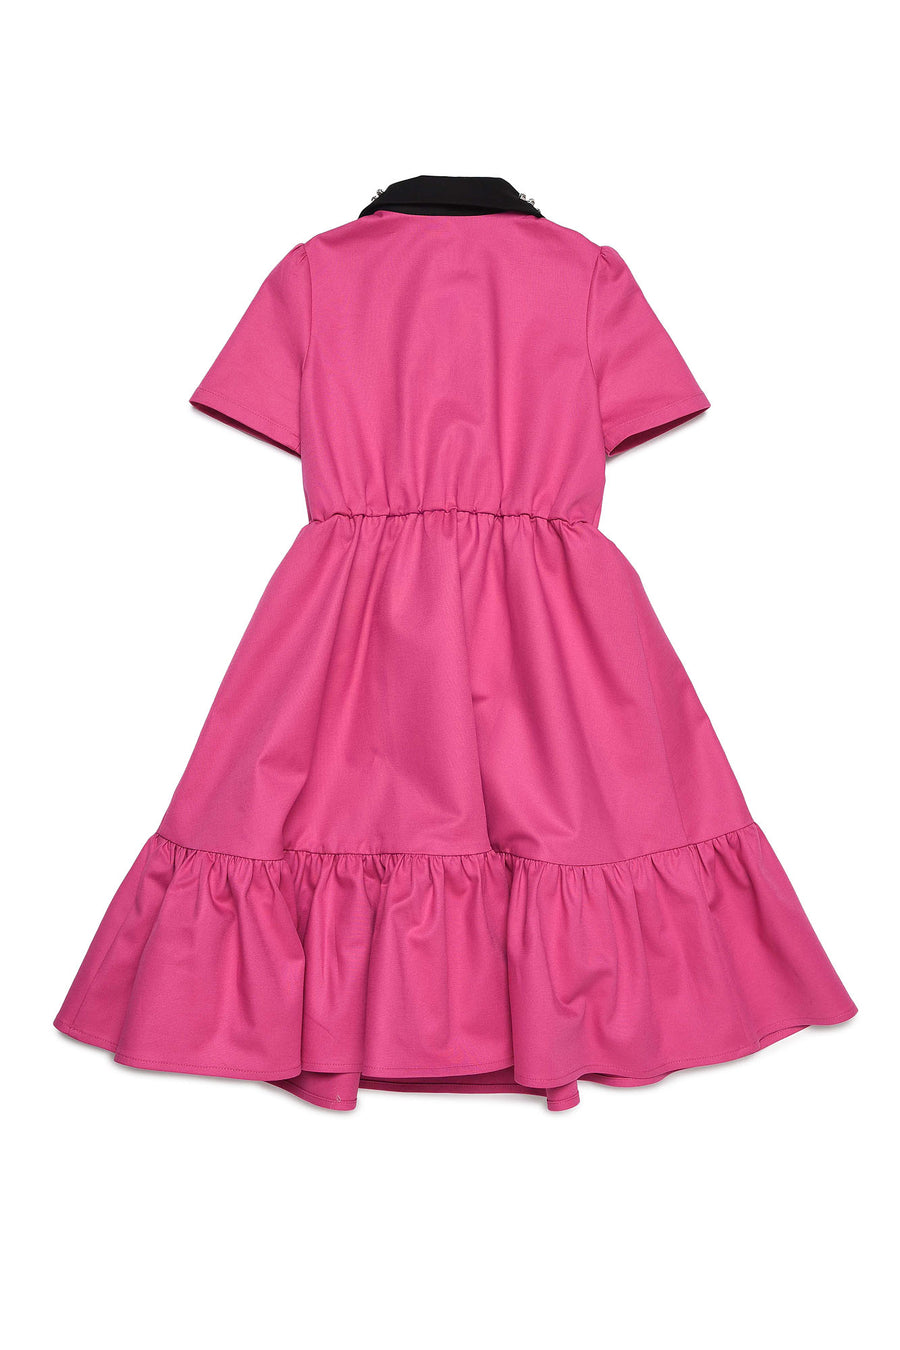 Hot Pink Jewel Collar Dress by N21